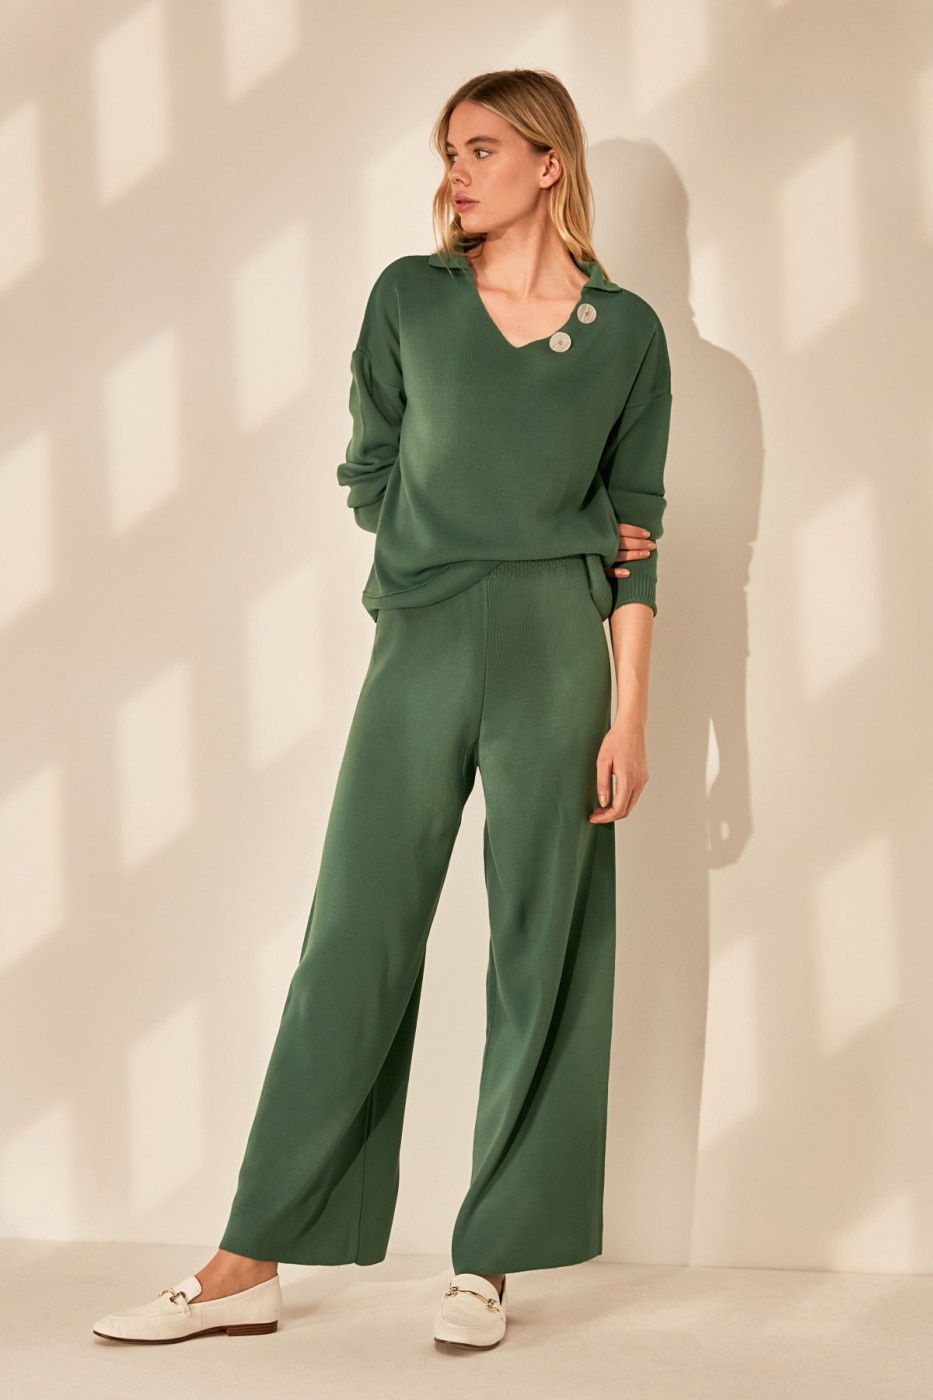 Trendyol Green 2 Sweater - Pants Knitwear Bottom-Top Team